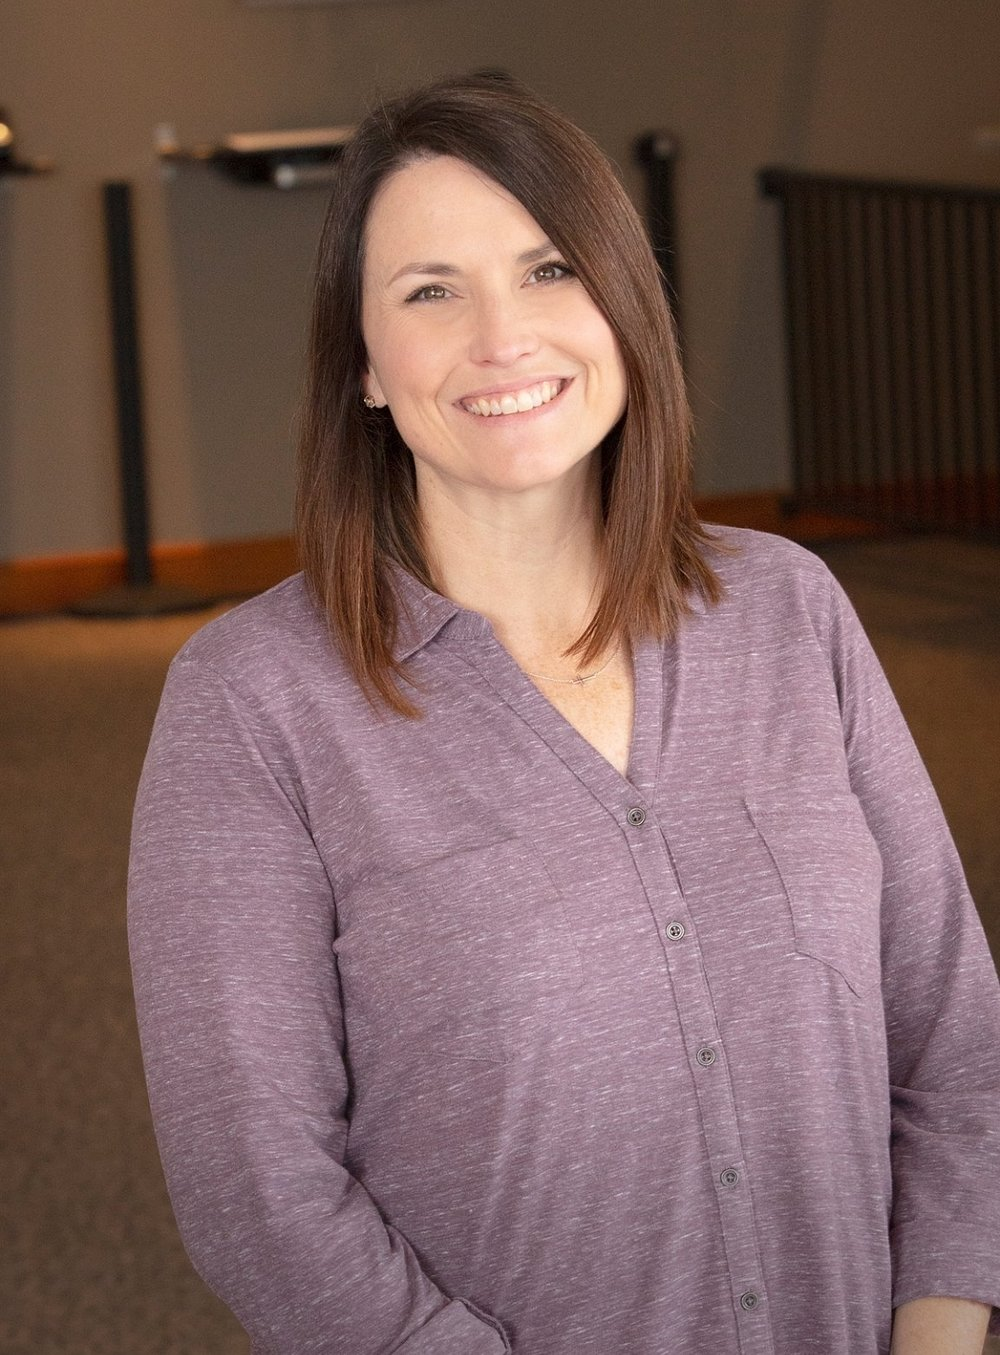 Leanne Allen  |  Director of Children's Ministry    leanne@harmonybiblechurch.org